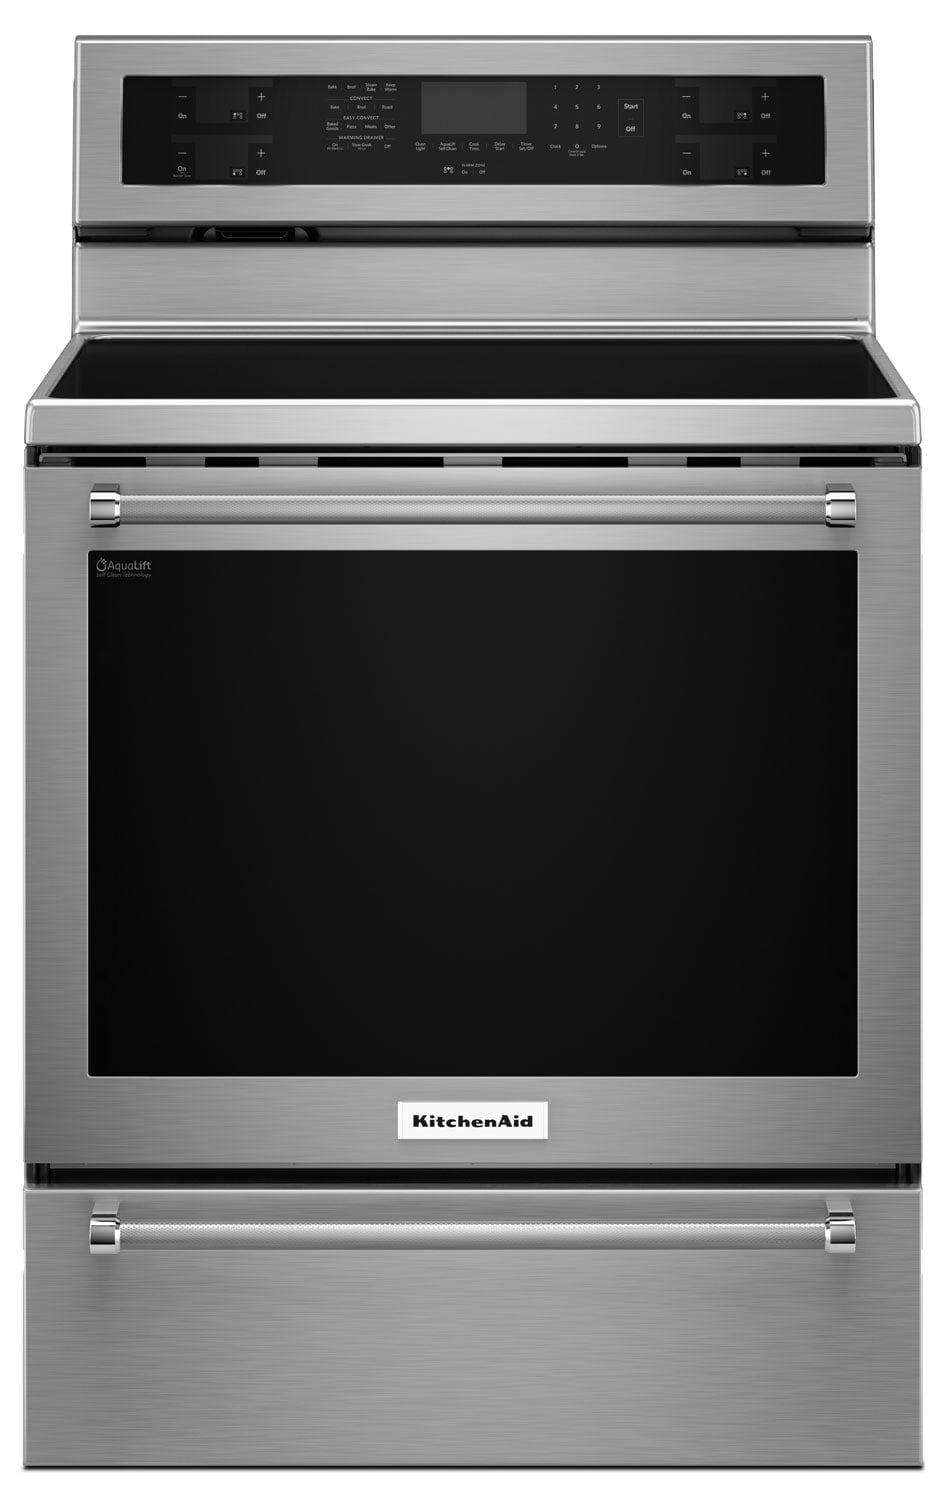 Cooking Products - KitchenAid 6.4 Cu. Ft. Electric Convection Range with Warming Drawer - Stainless Steel